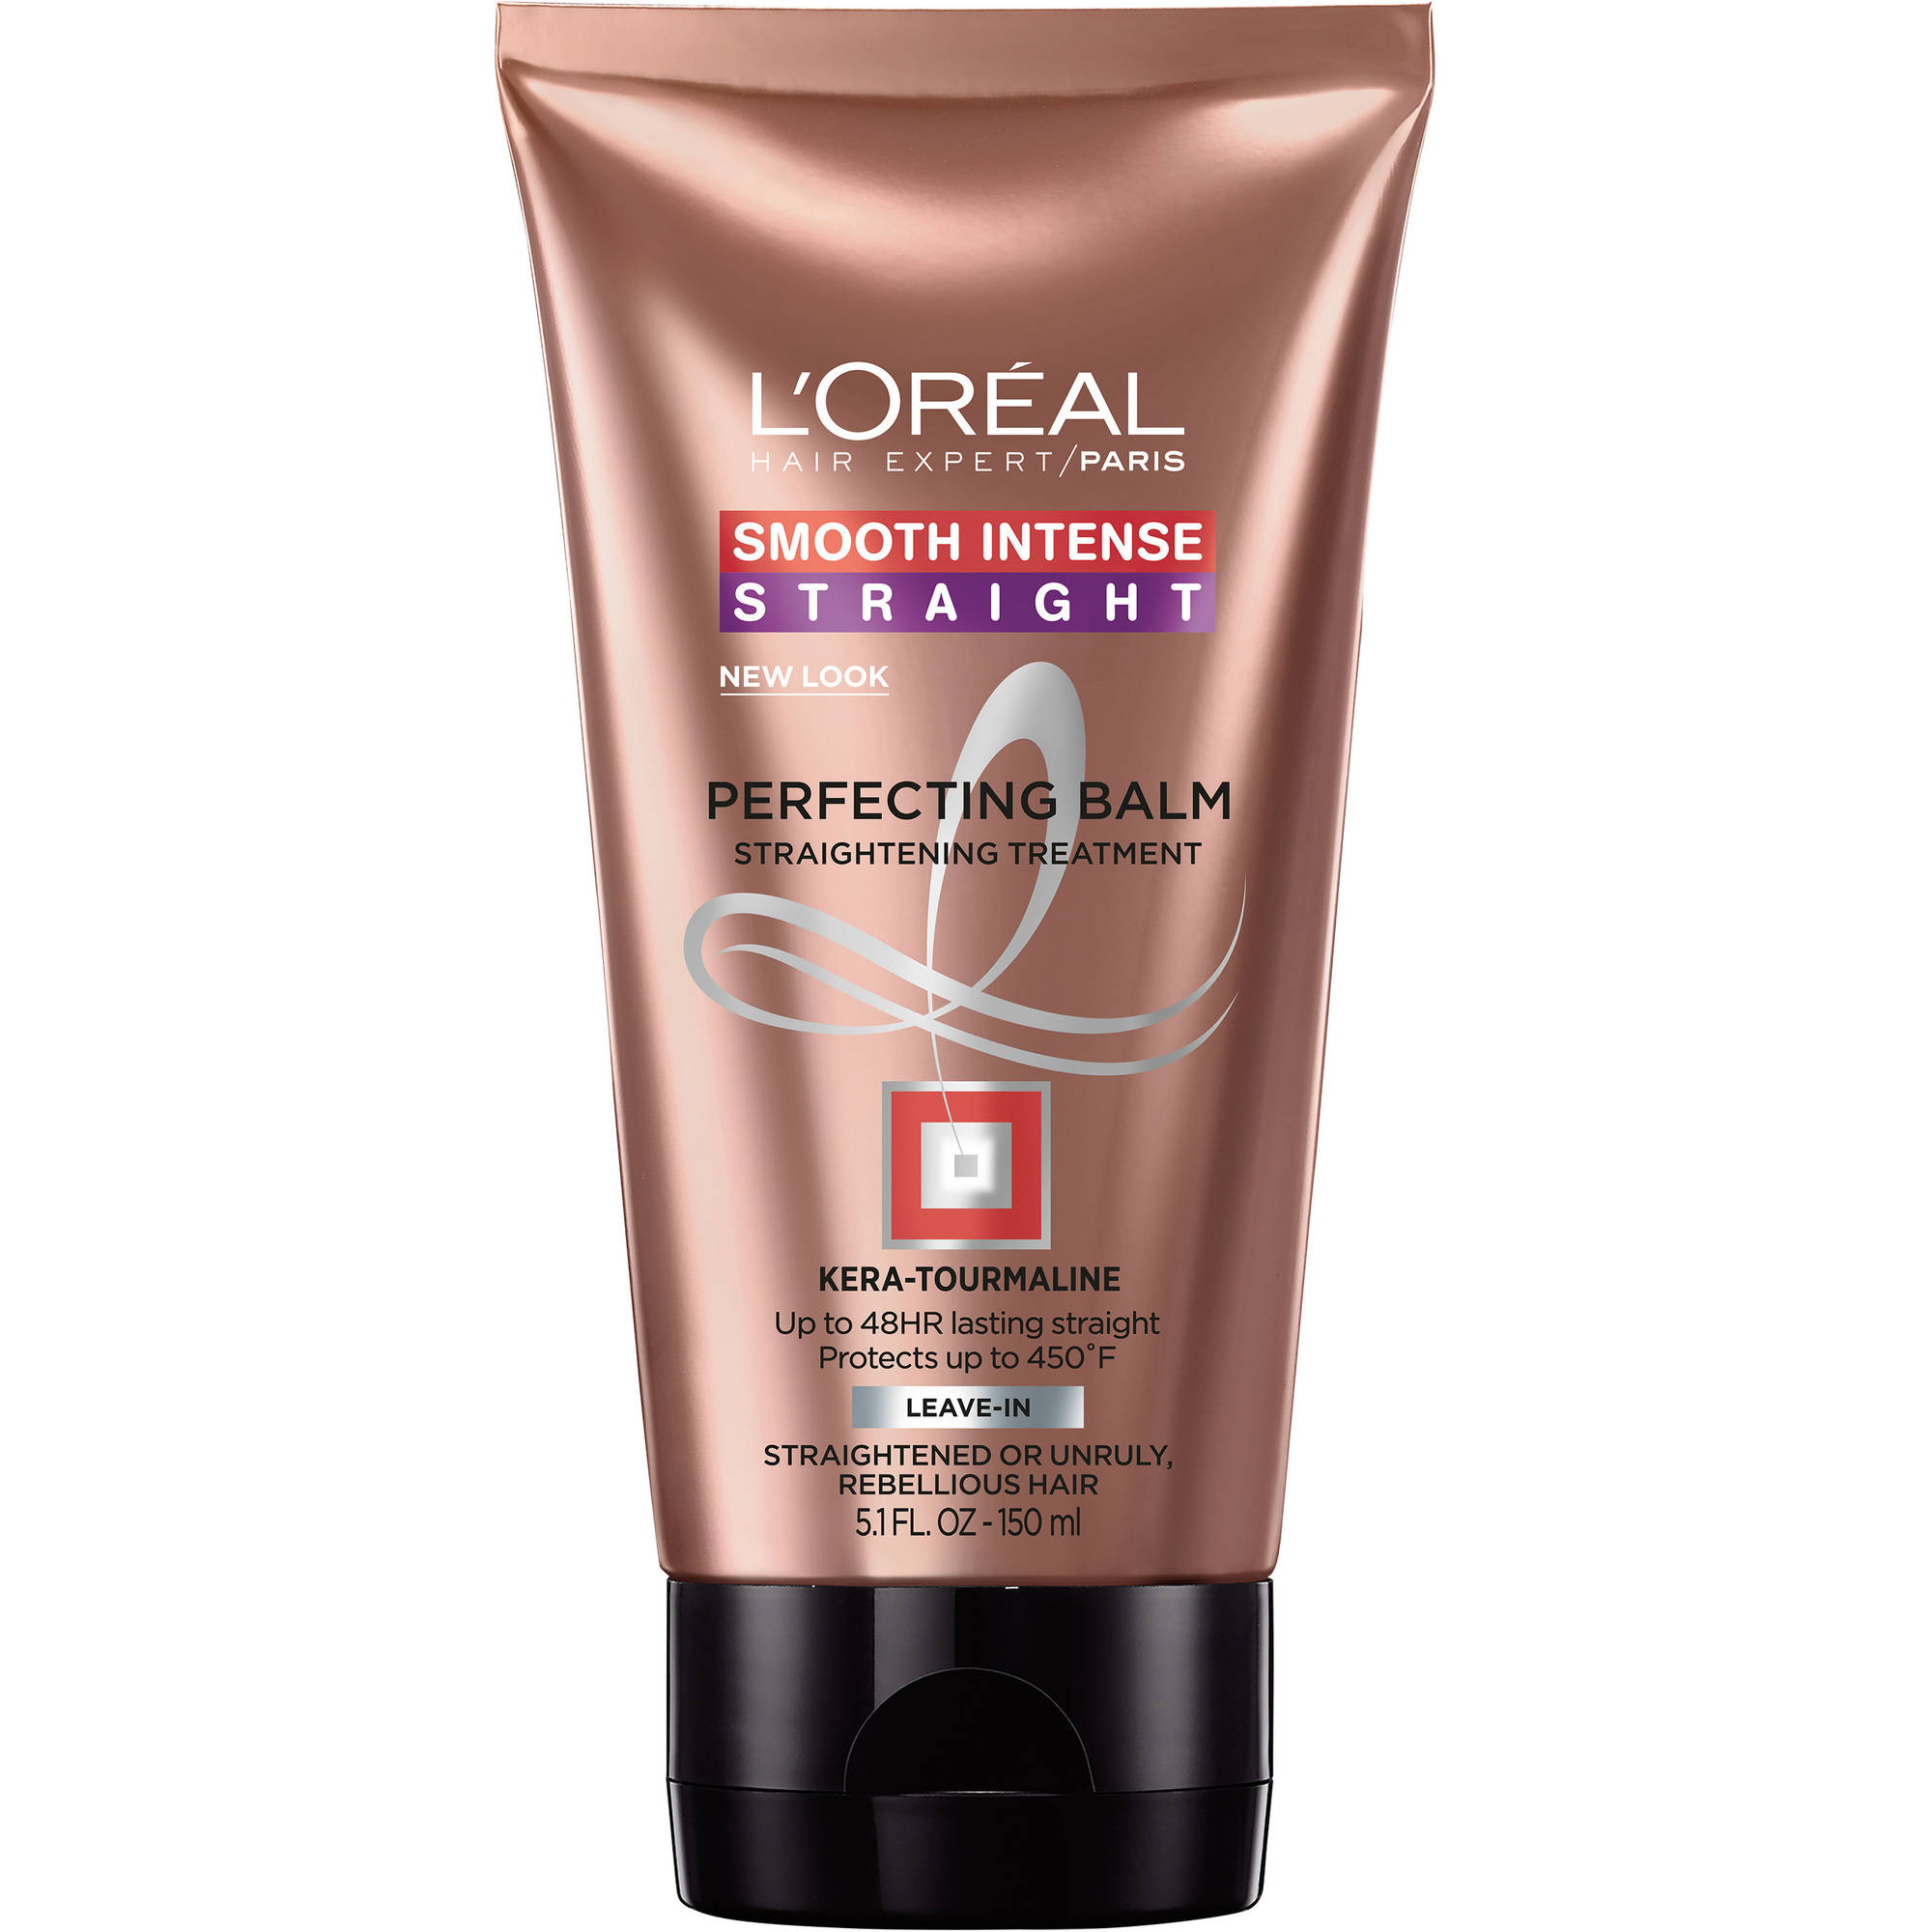 L'Oreal Paris Advanced Haircare Smooth Intense Ultimate Straight Straight Perfecting Balm, 5.1 fl oz